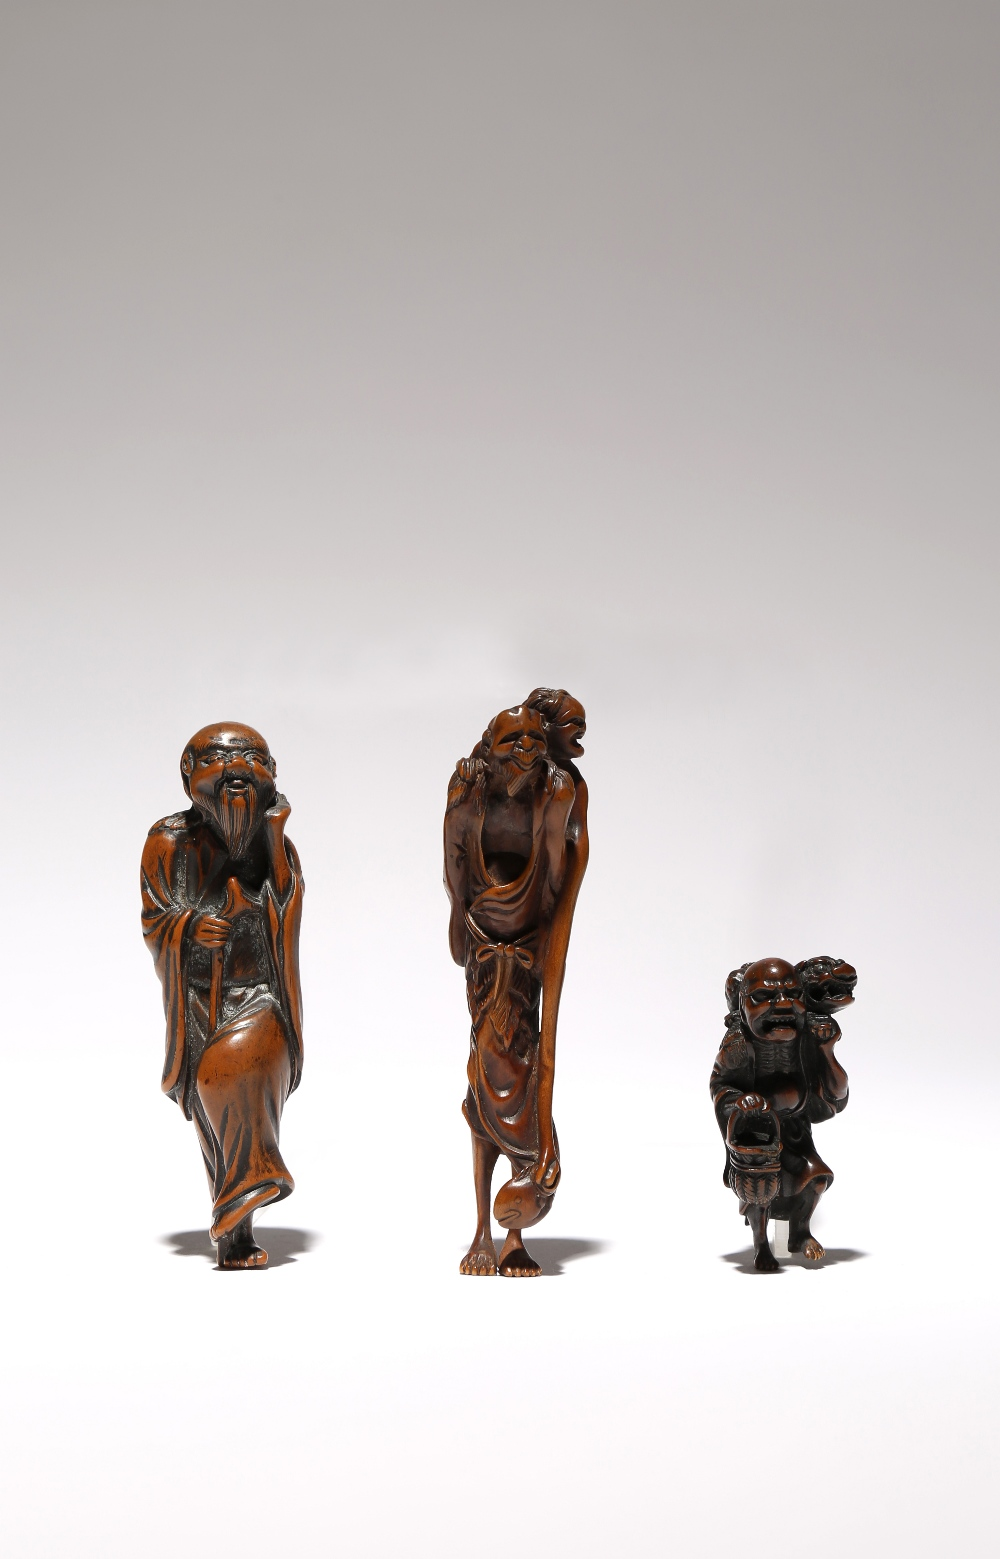 THREE JAPANESE WOOD NETSUKE OF FIGURES EDO AND MEIJI PERIODS, 18TH AND 19TH CENTURIES The tallest